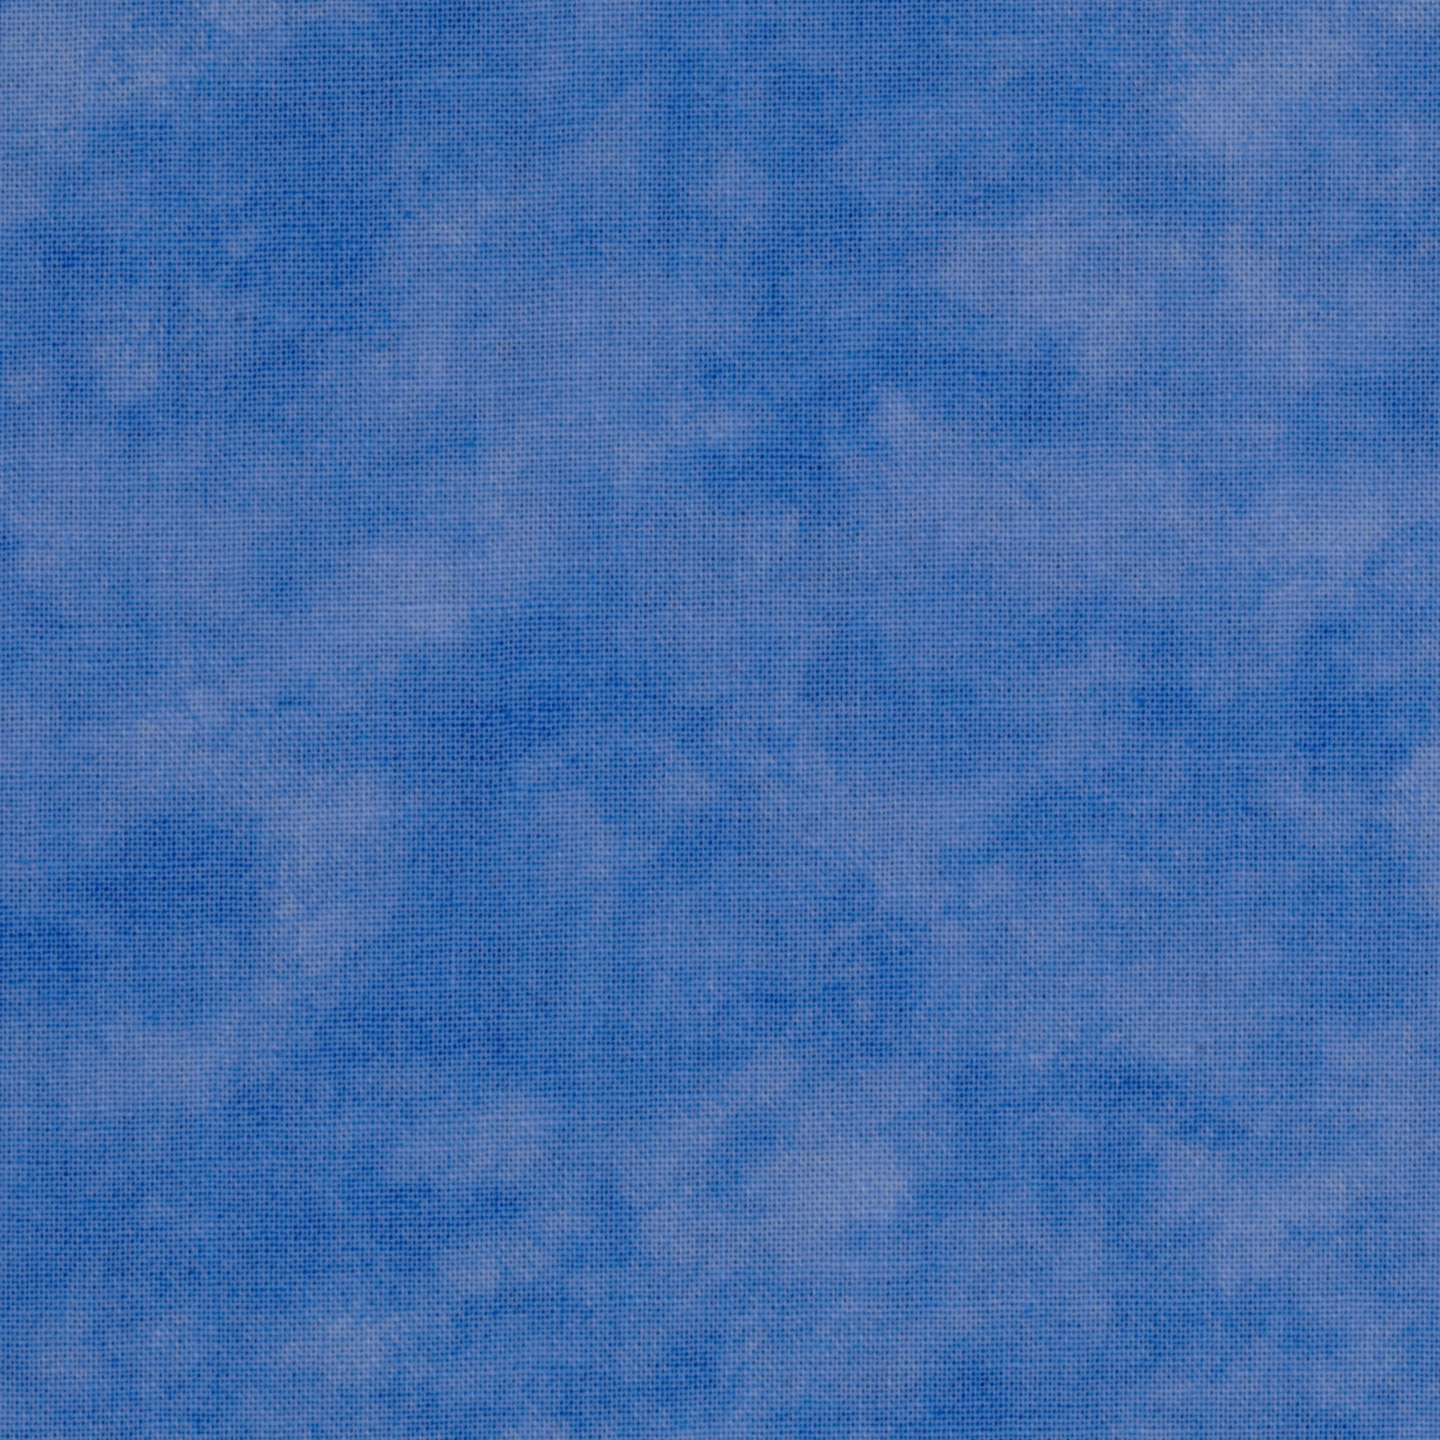 Moda Marbles (9809) Bright Blue Fabric